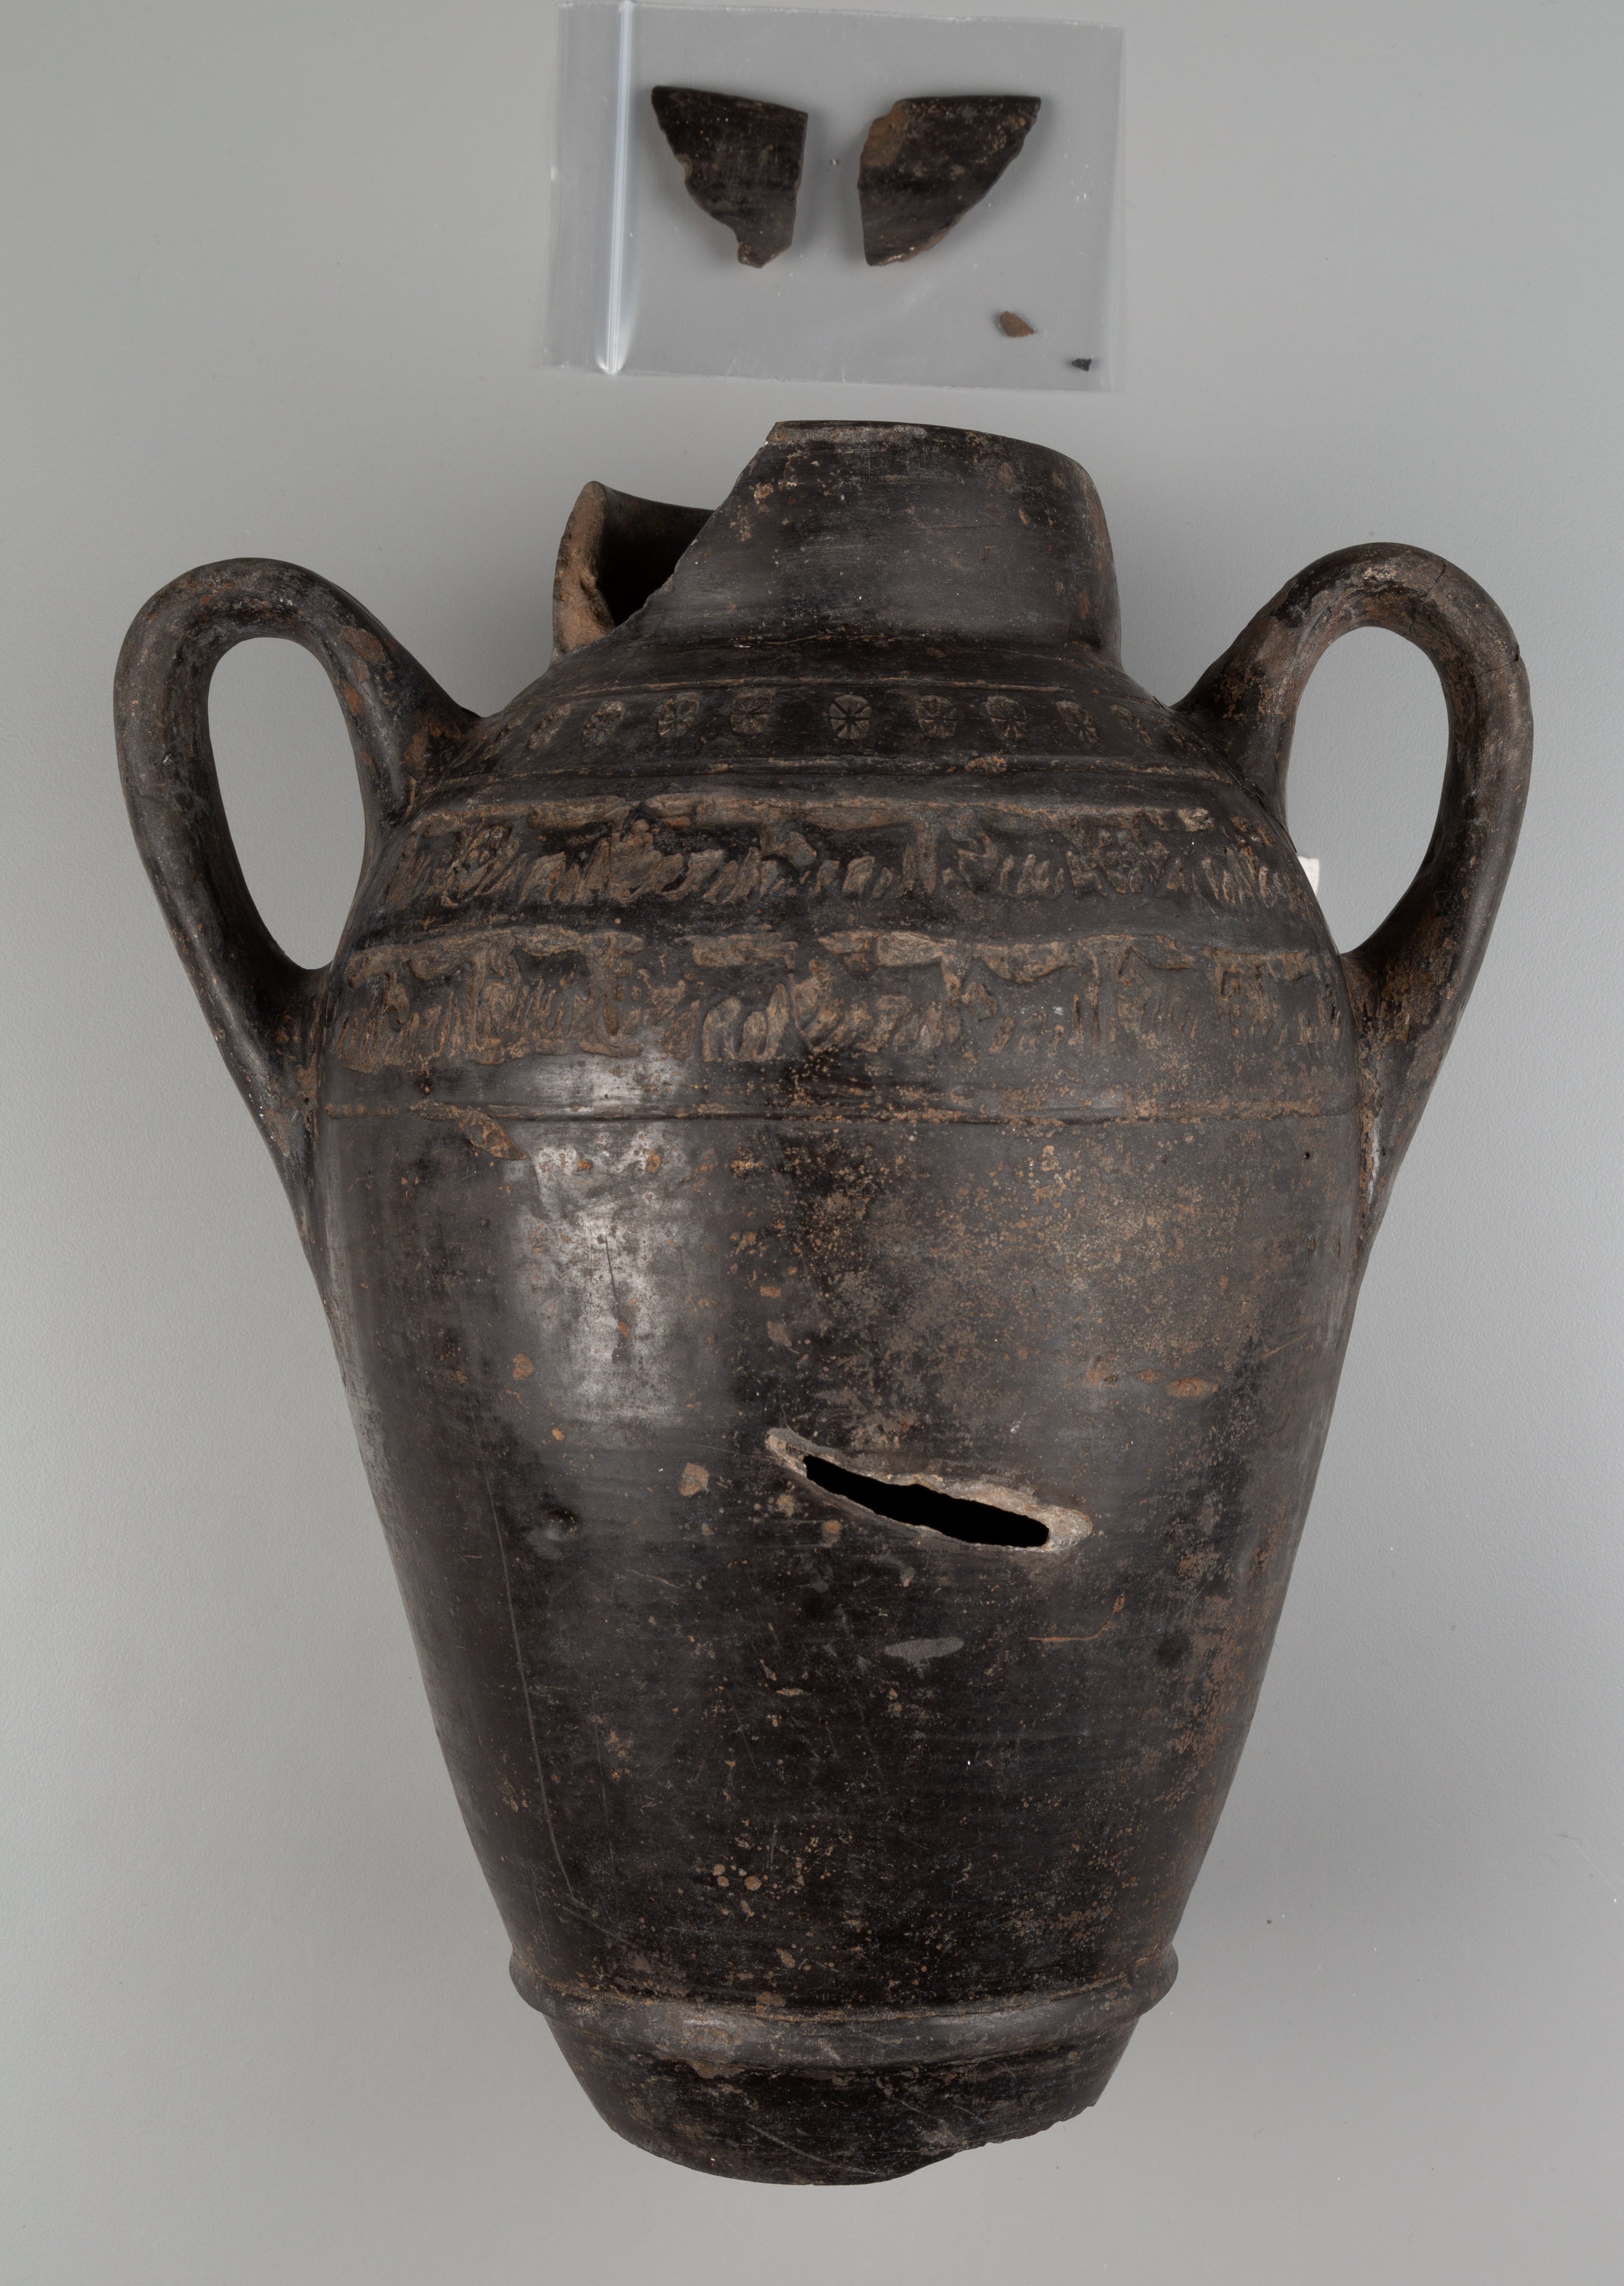 This photograph shows a shiny dark brown vessel with two curved handles, vertically oriented. There is a diagonal gash in the middle of the vessel. Above the vessel is a small plastic bag with four fragments inside; two are larger and two are very small.